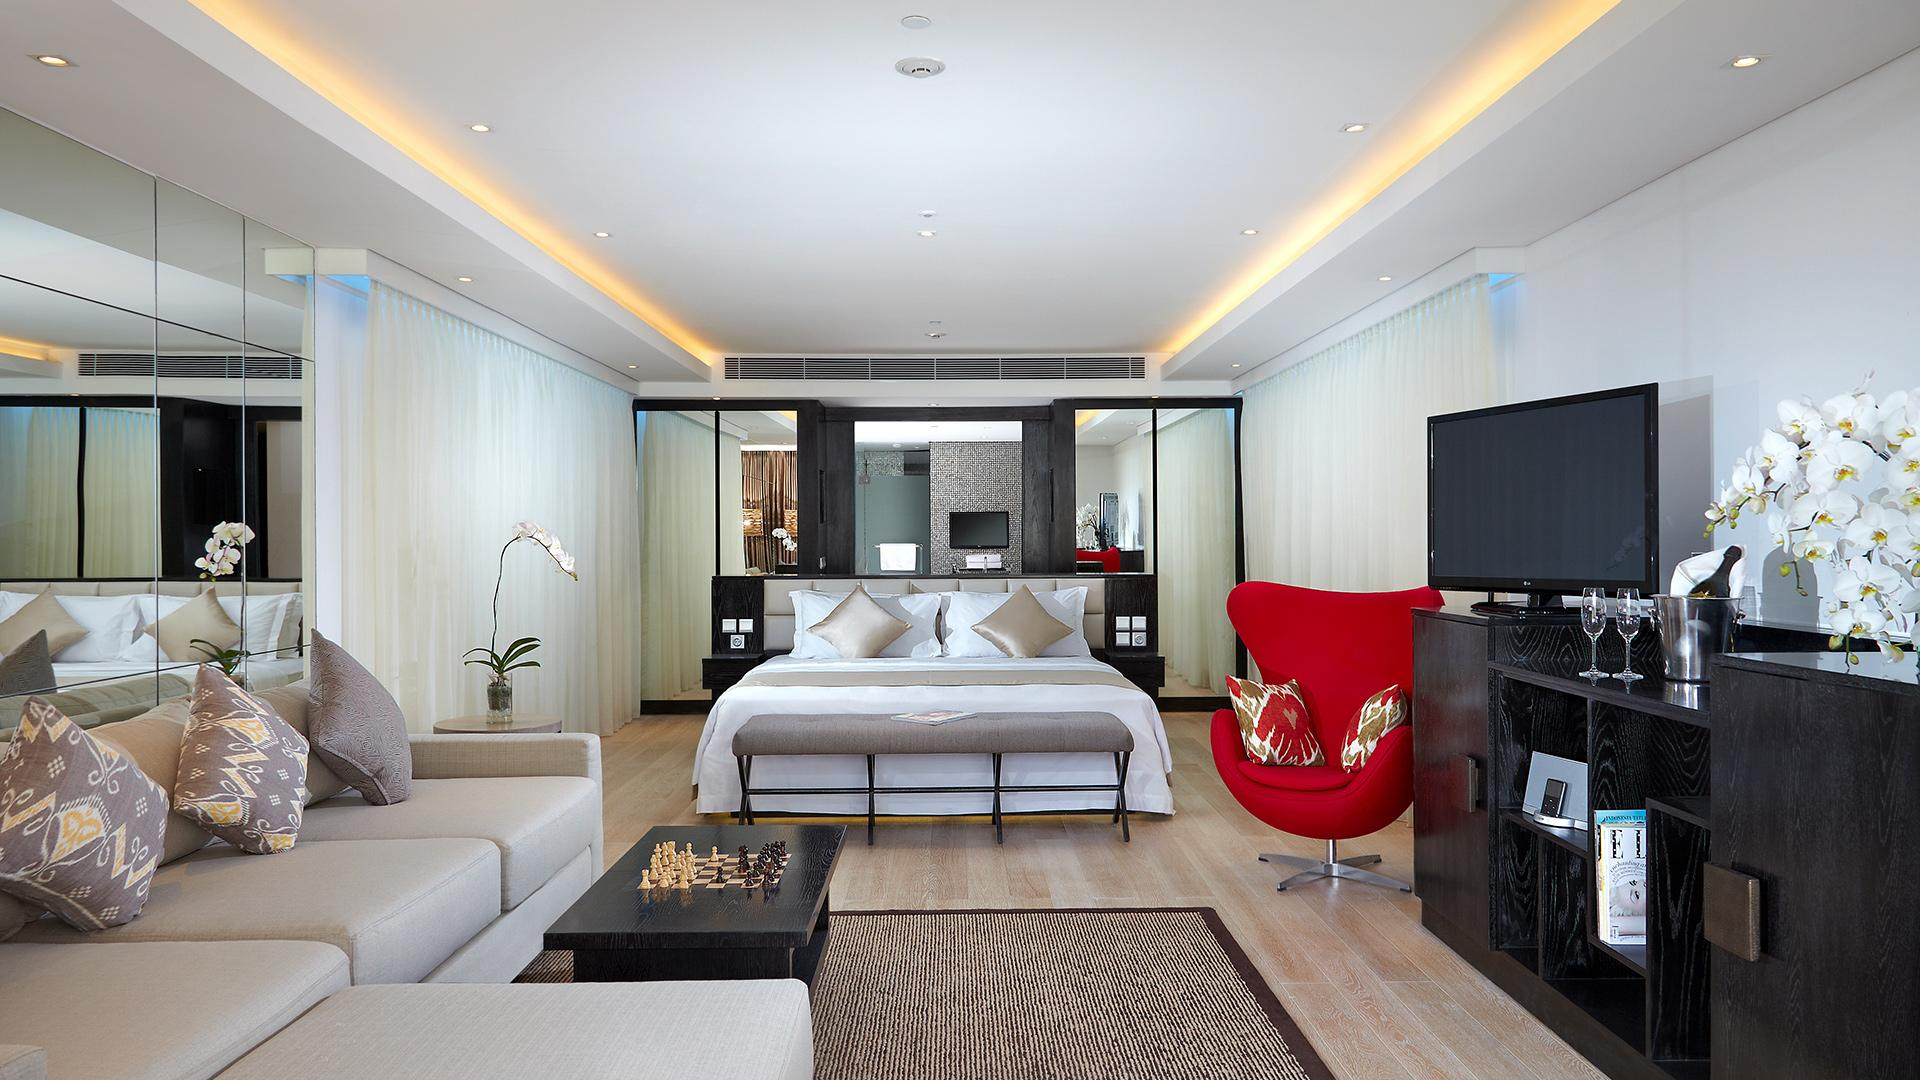 Leisure Suite image 1 at Double-Six Luxury Hotel - July 2019 by Kabupaten Badung, Bali, Indonesia